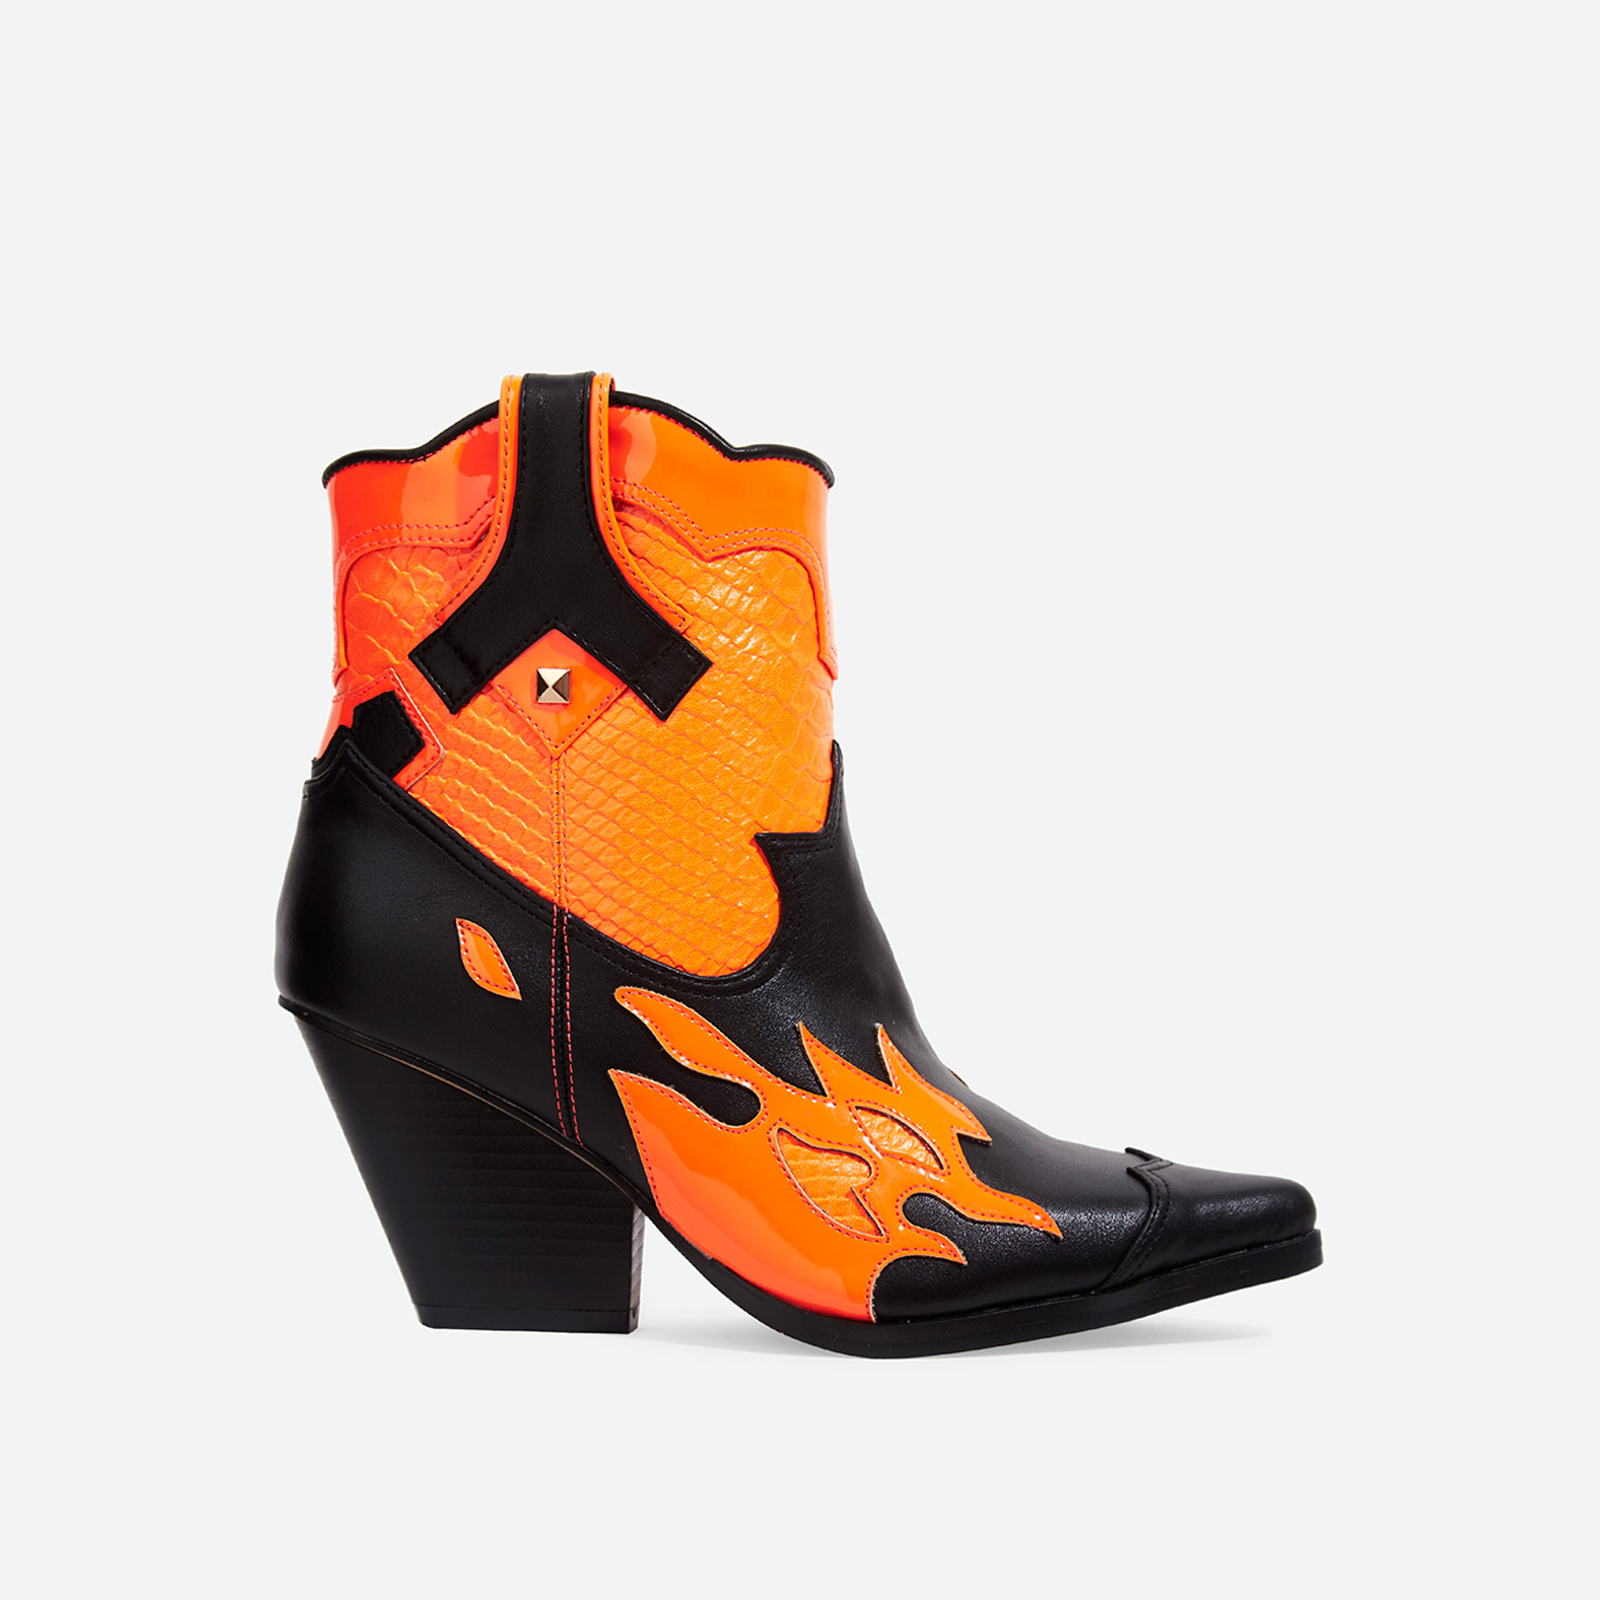 Hartley Orange Snake Print Detail Western Ankle Boot In Black Faux Leather